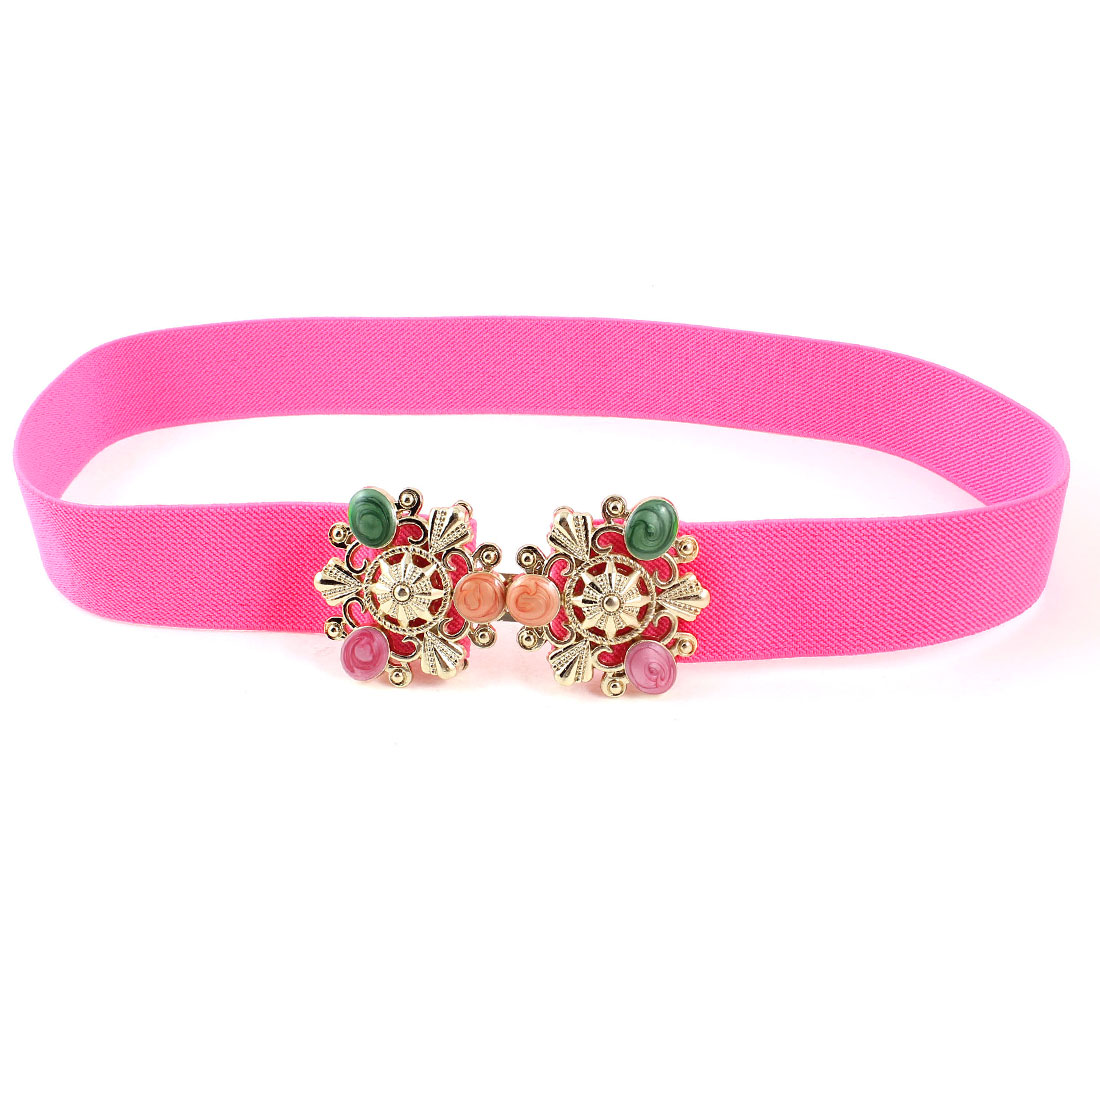 Pink-Metal-Floral-Decor-Interlock-Buckle-Elastic-Waist-Belt-for-Lady